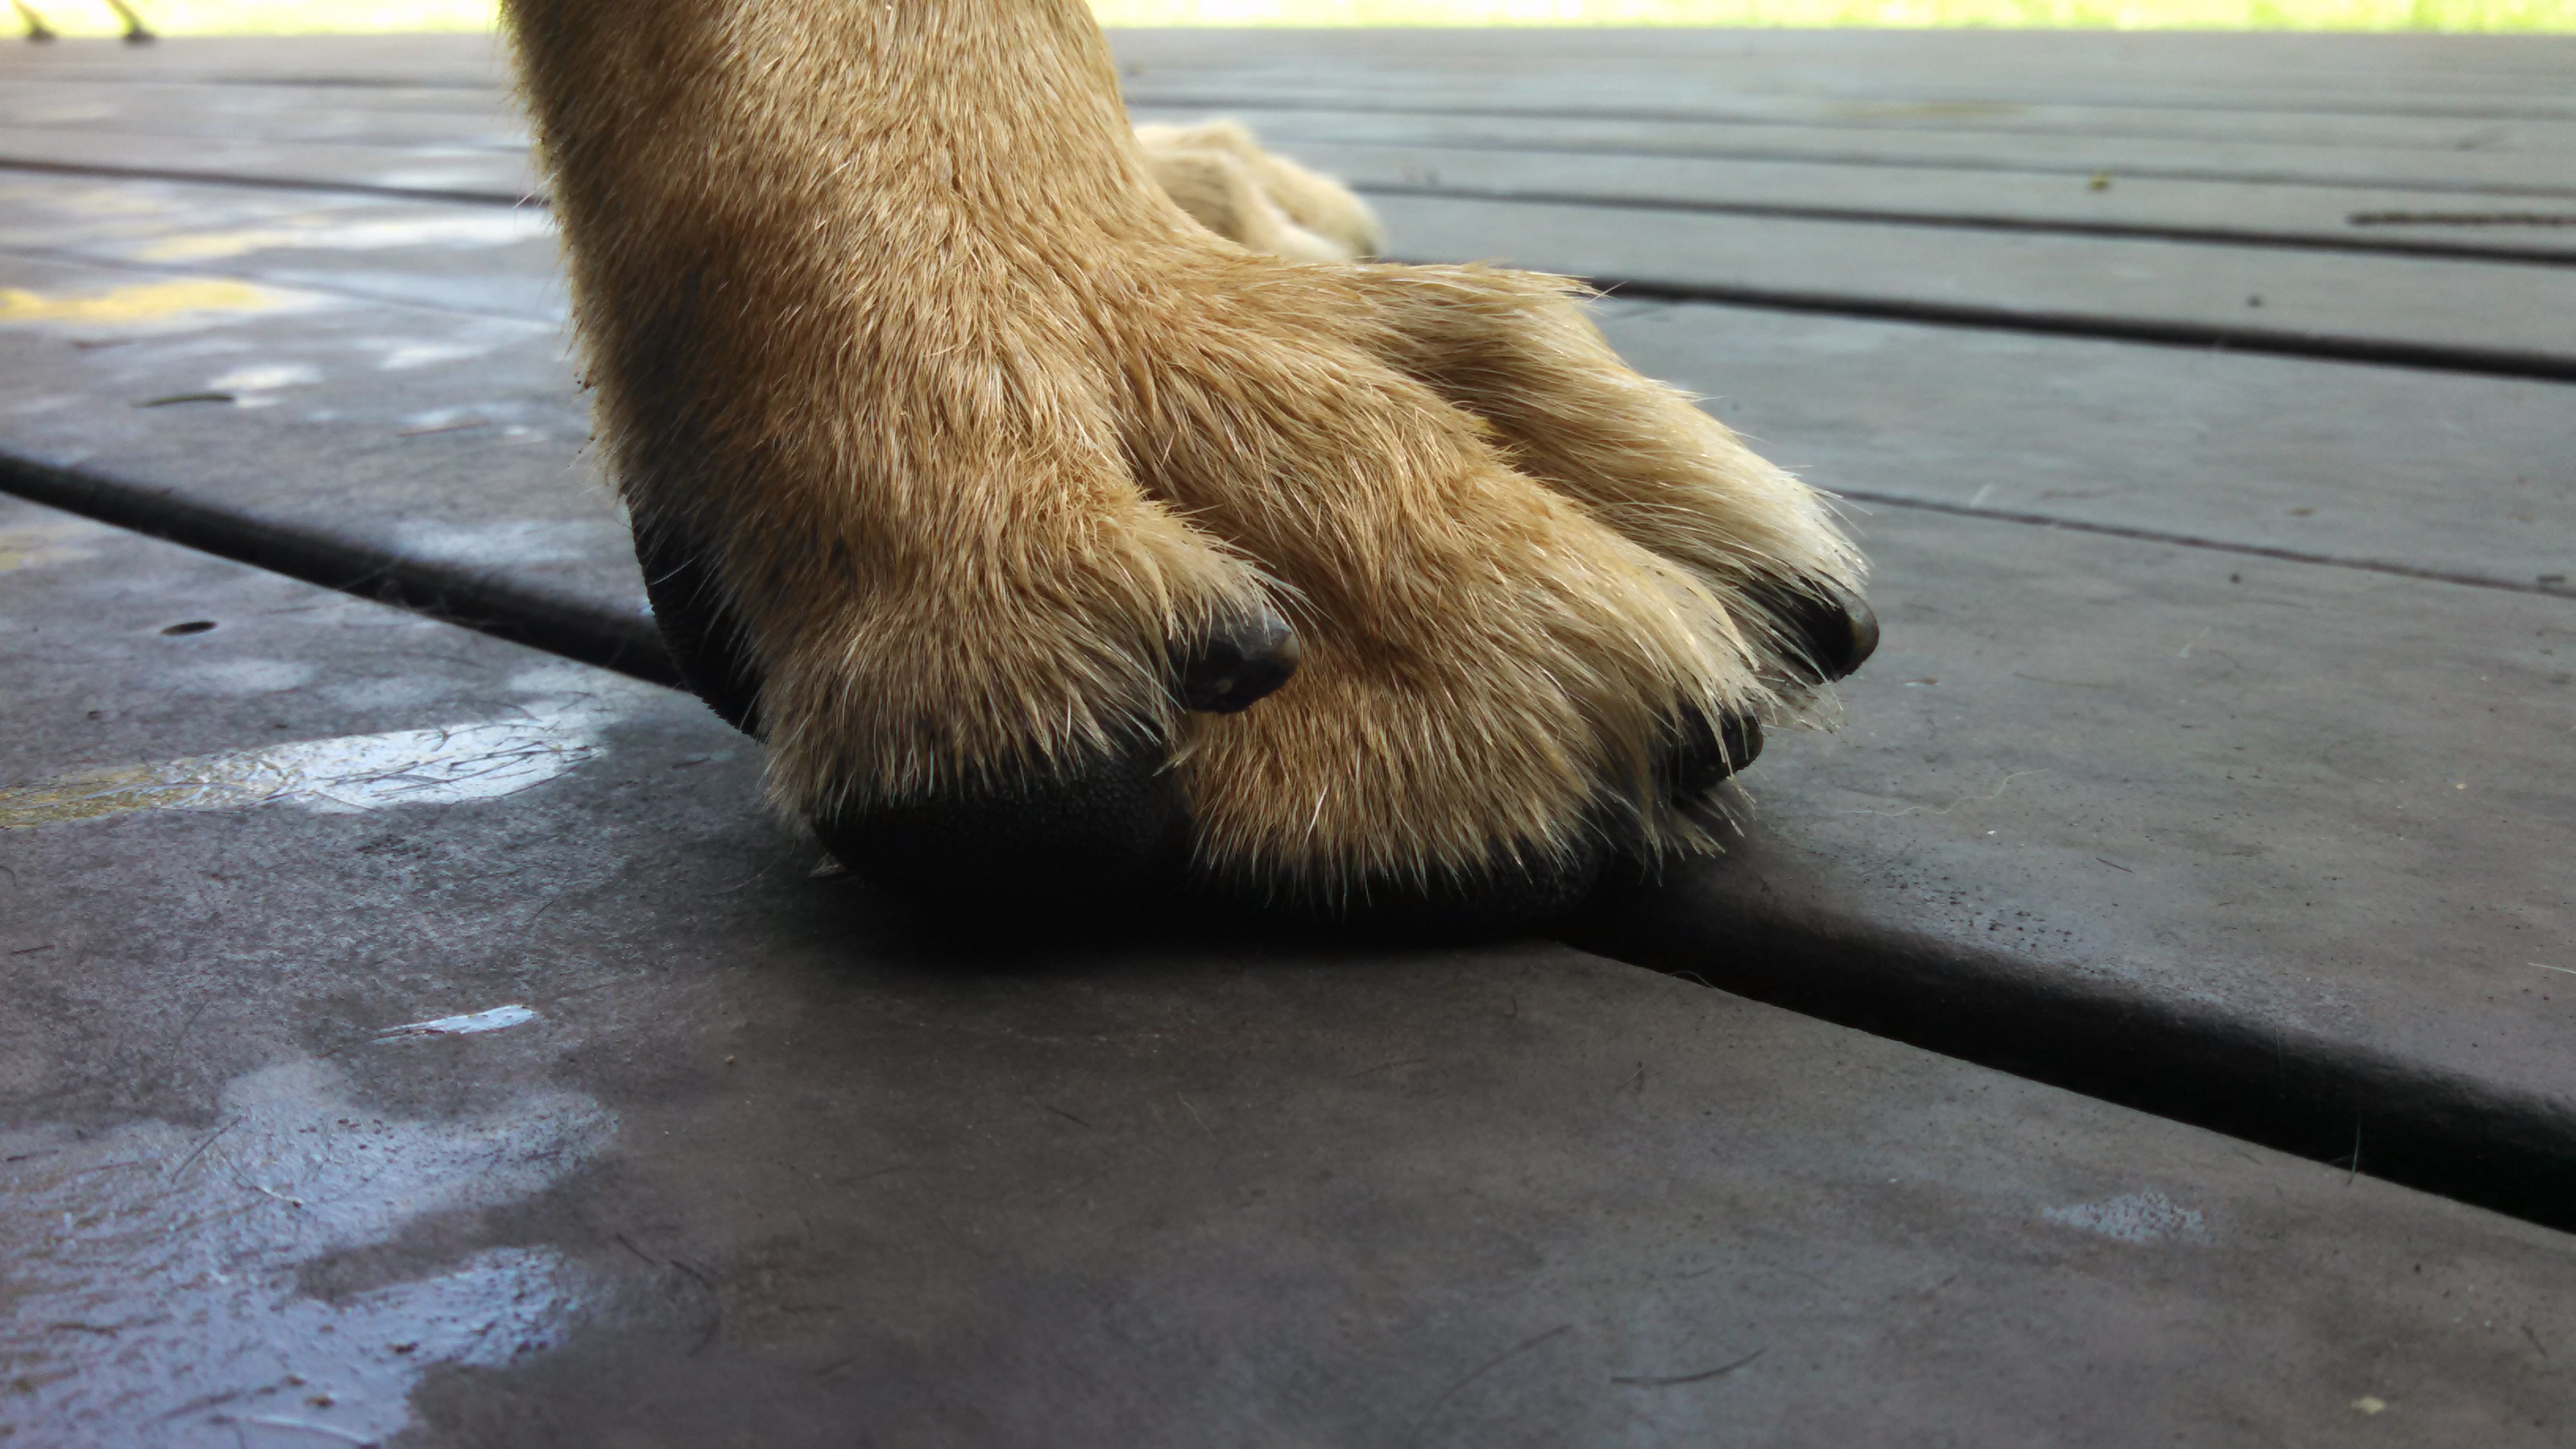 German Shepherd Watch Dogs Nails How Long Is Too Long For